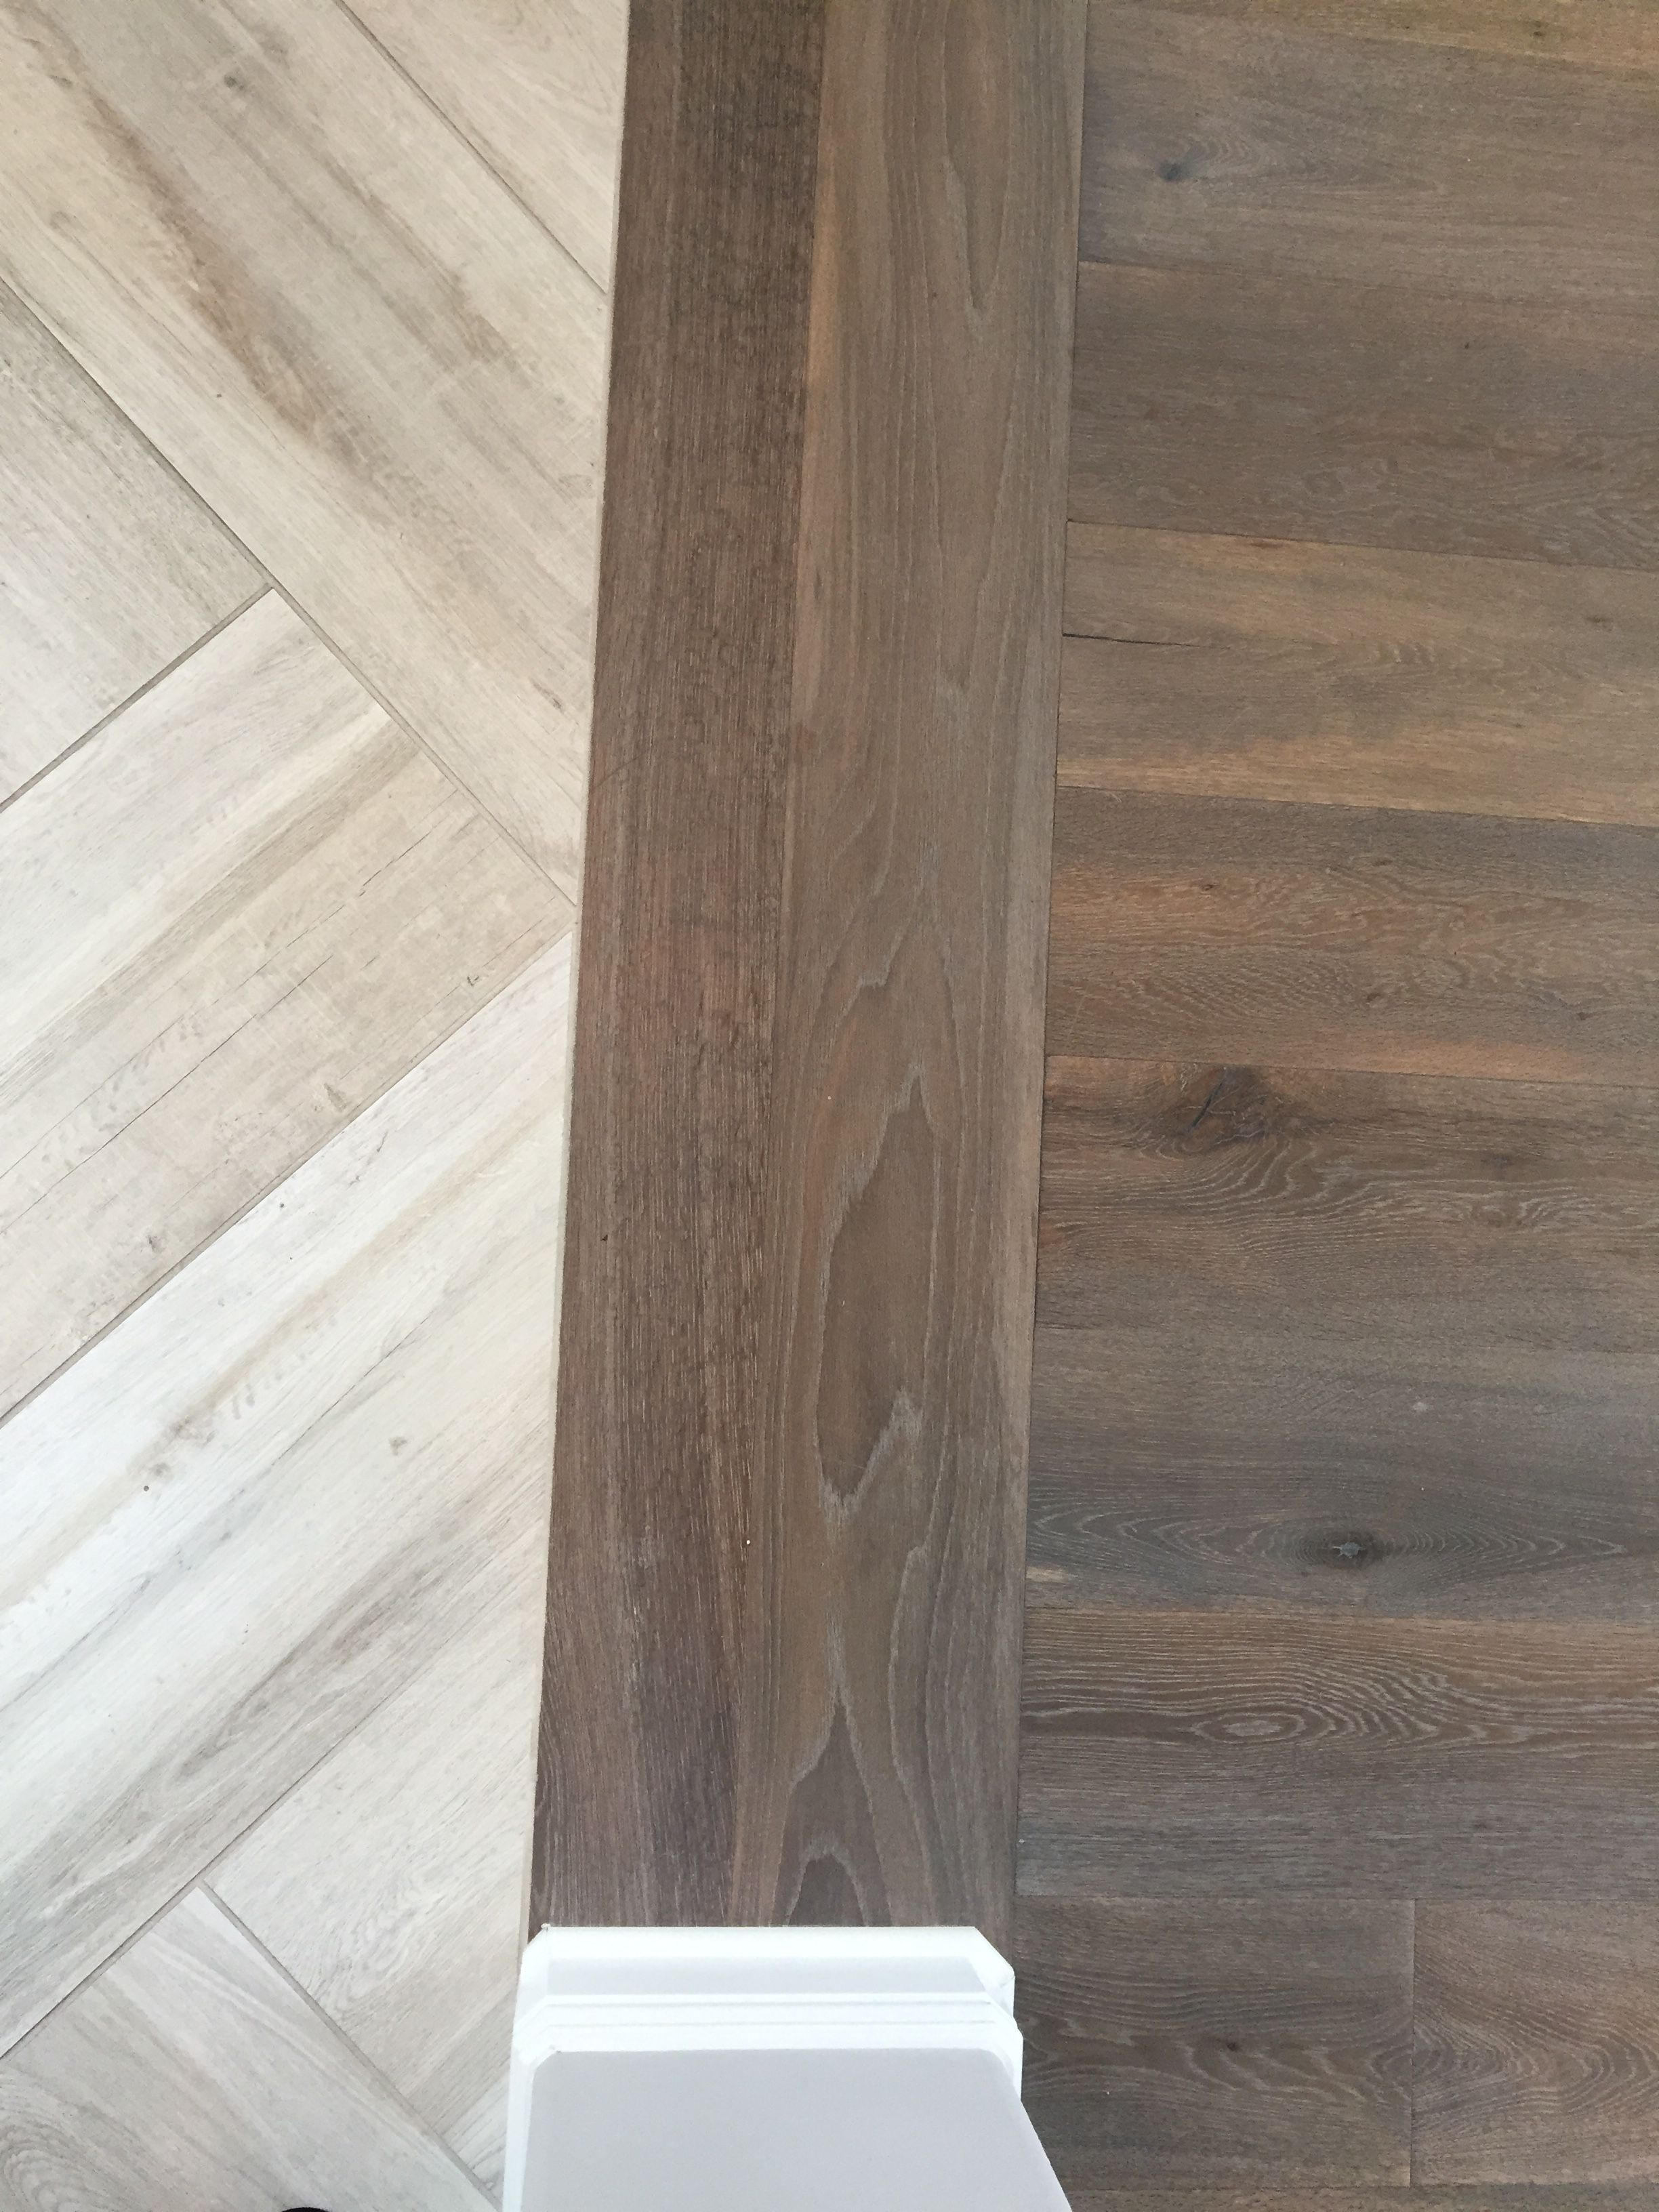 Floor Transition Laminate To Herringbone Tile Pattern Model - What to look for in laminate wood flooring